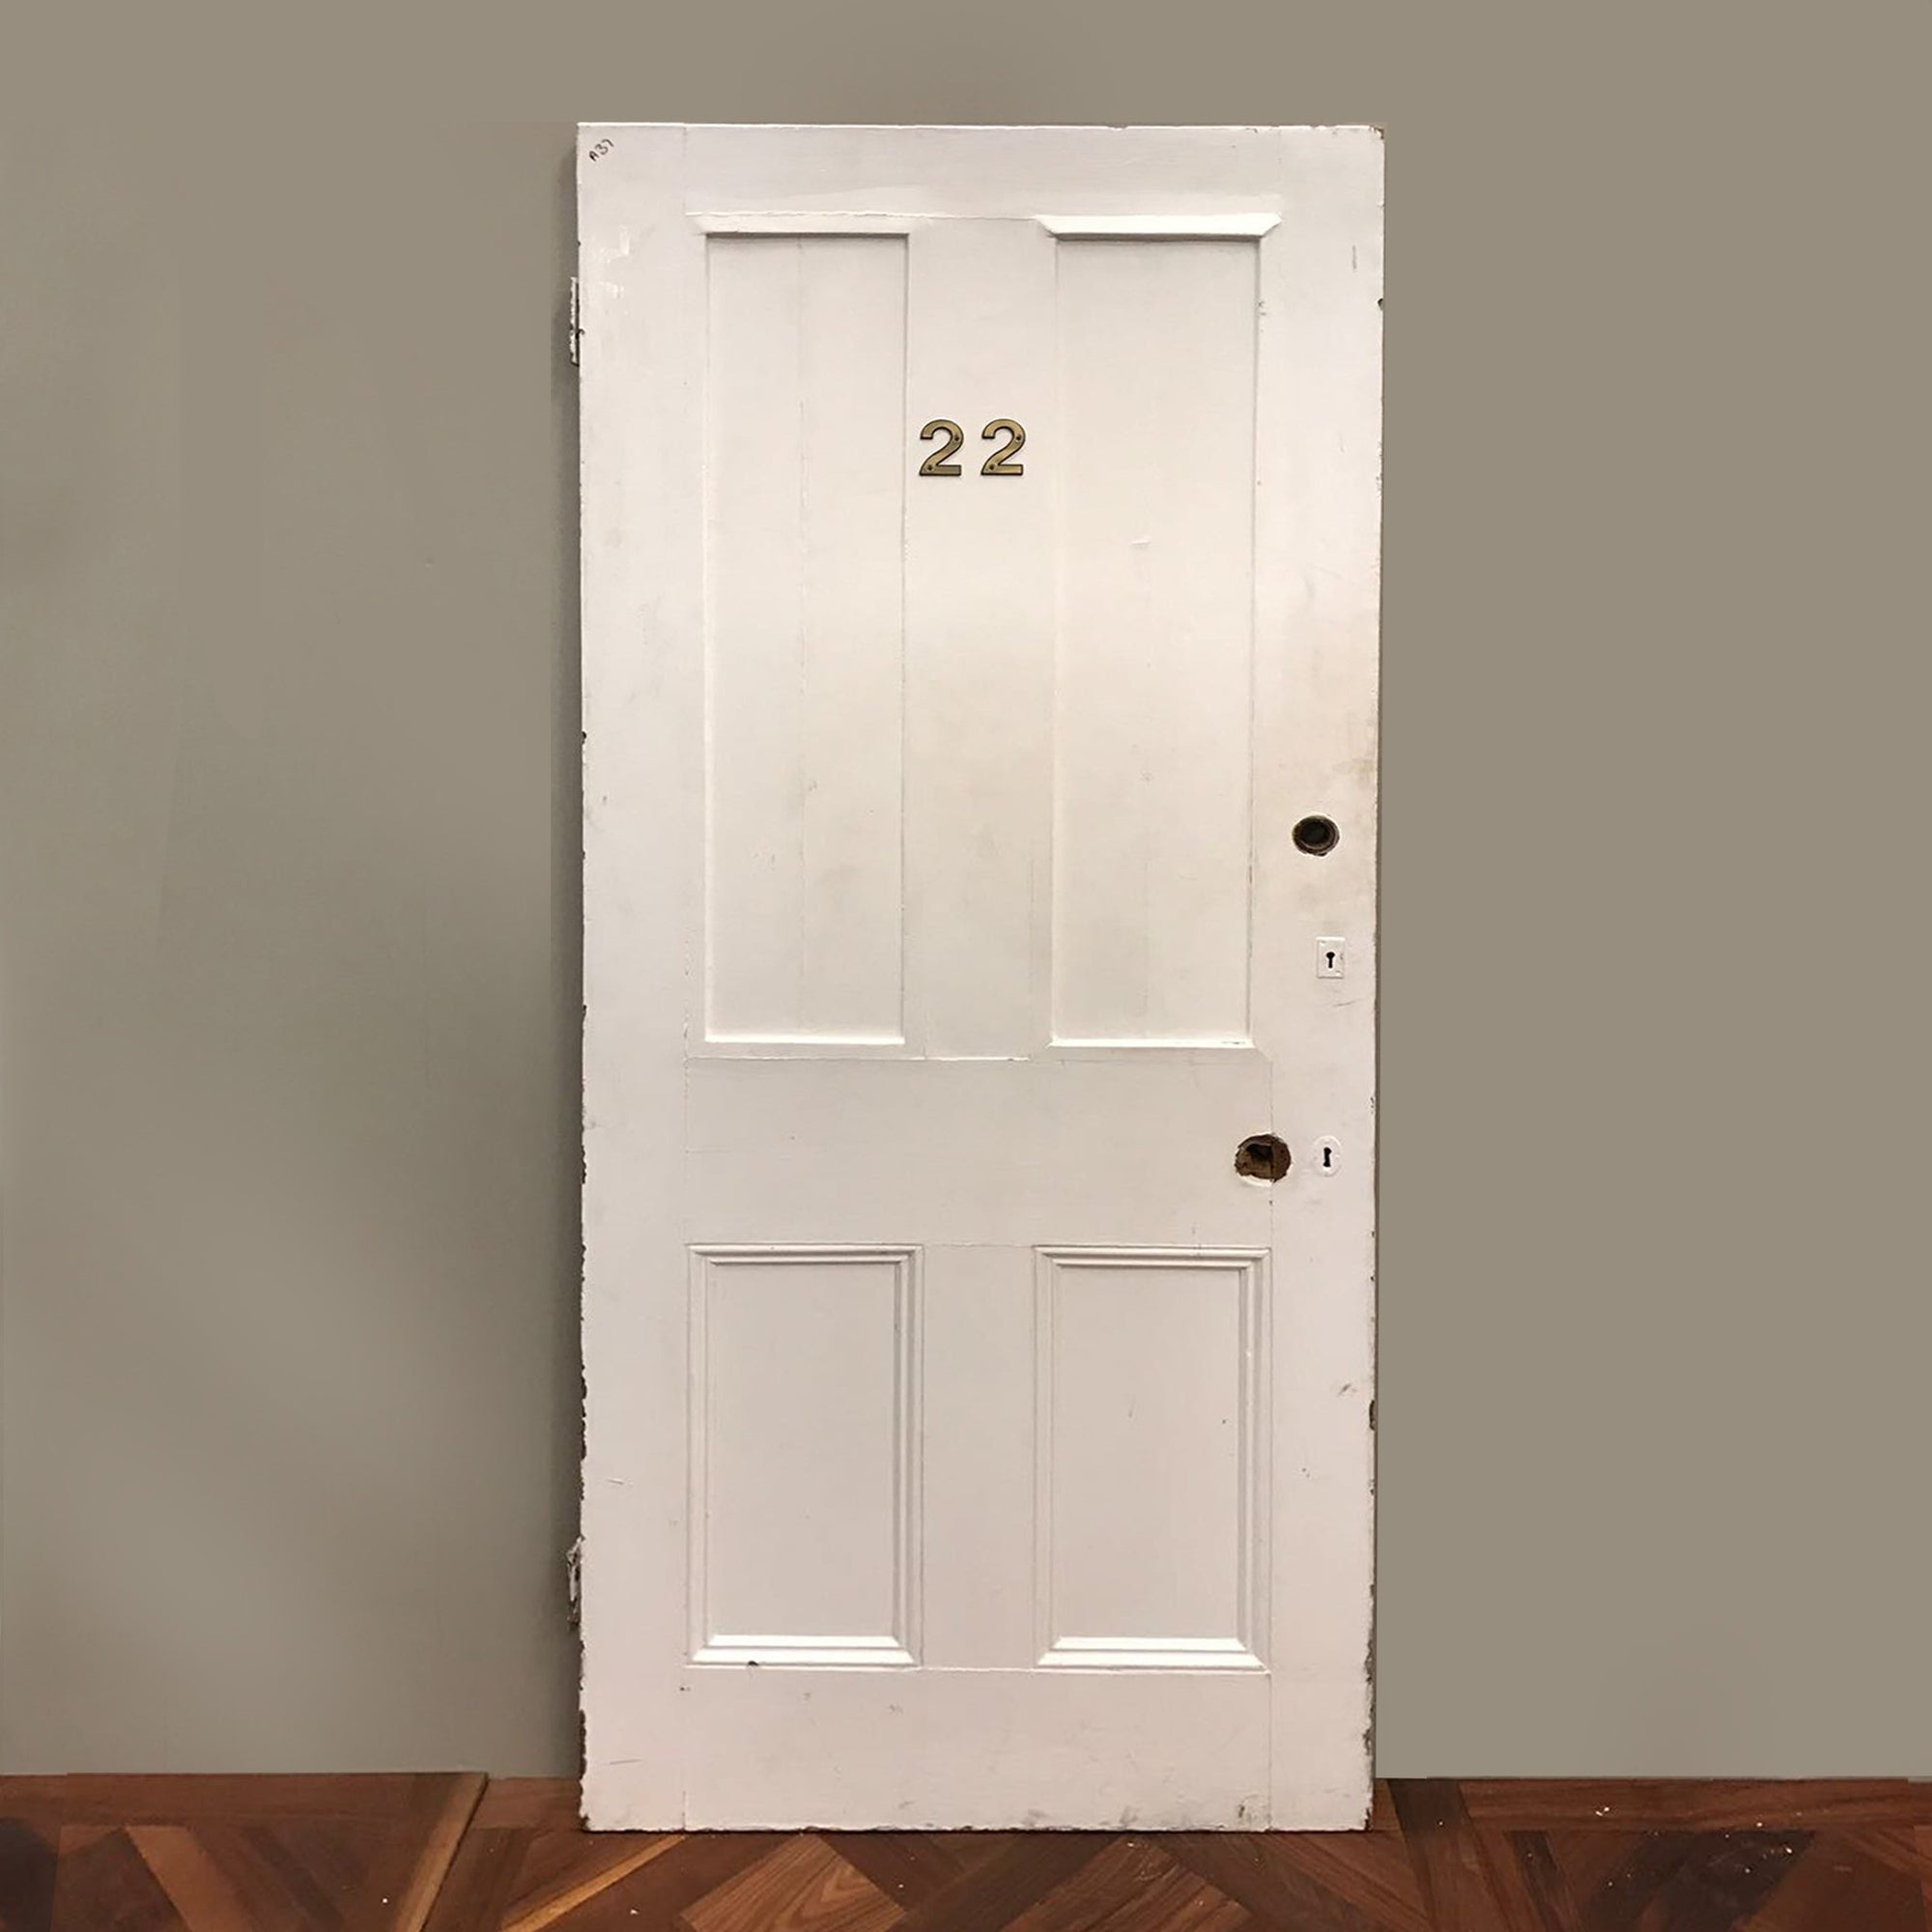 Victorian Four Panel Door - 200cm x 80.5cm - architectural-forum